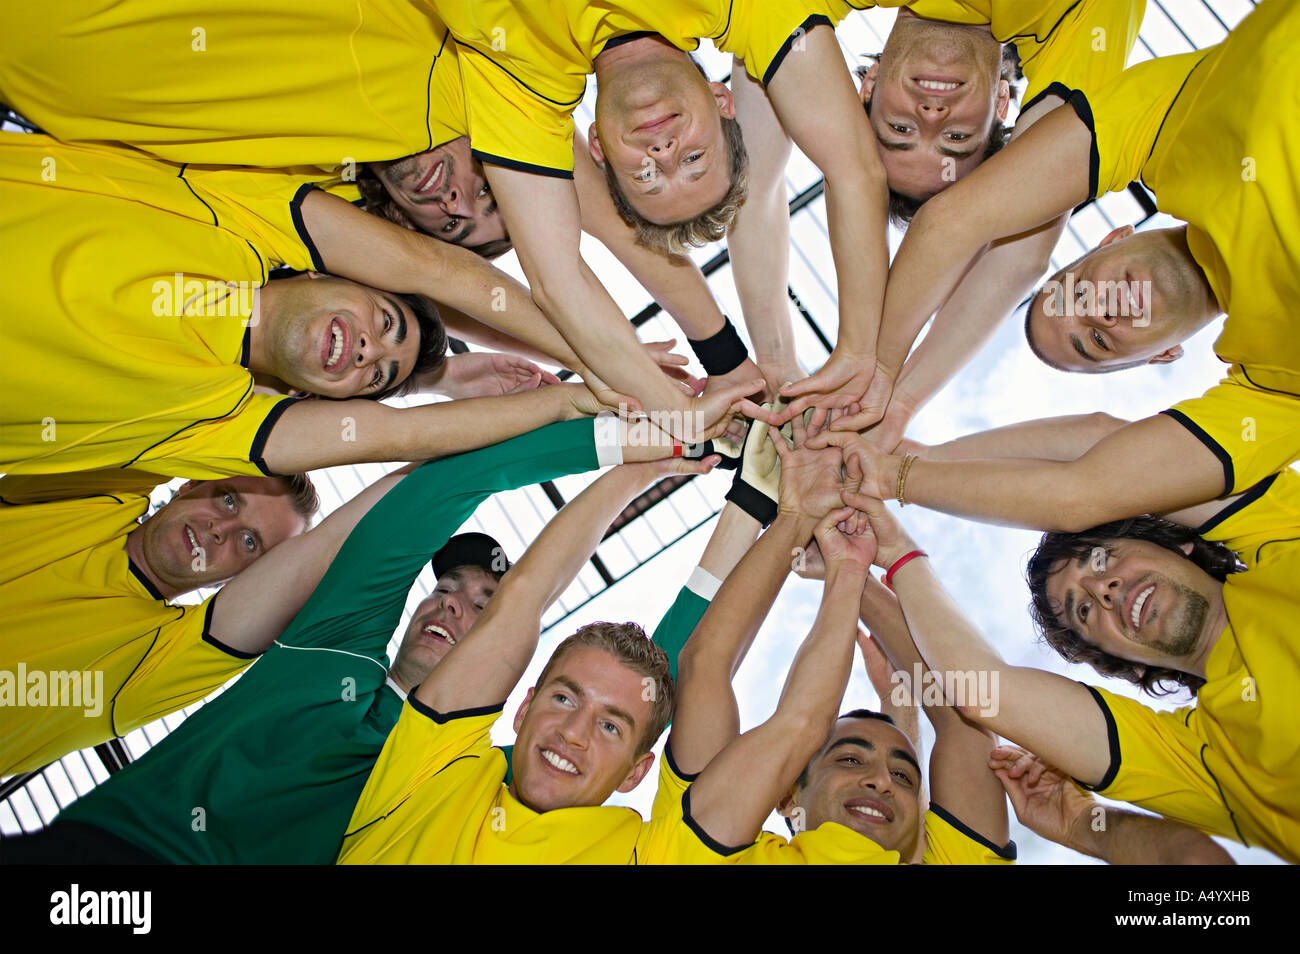 Football team putting hands together - Stock Image